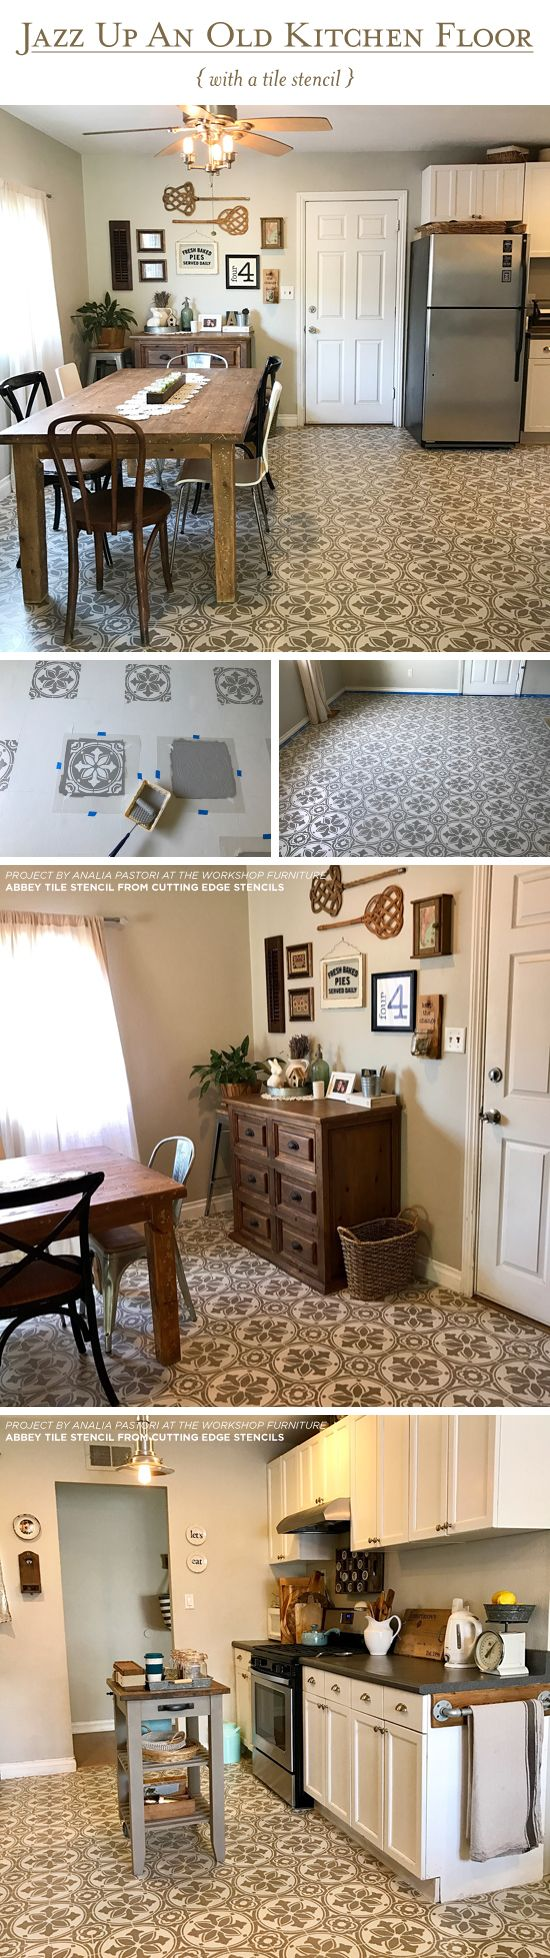 Find painted vinyl & linoleum floor makeover project ideas - with tutorials, recommended products, plus helpful tips & techniques for your next DIY